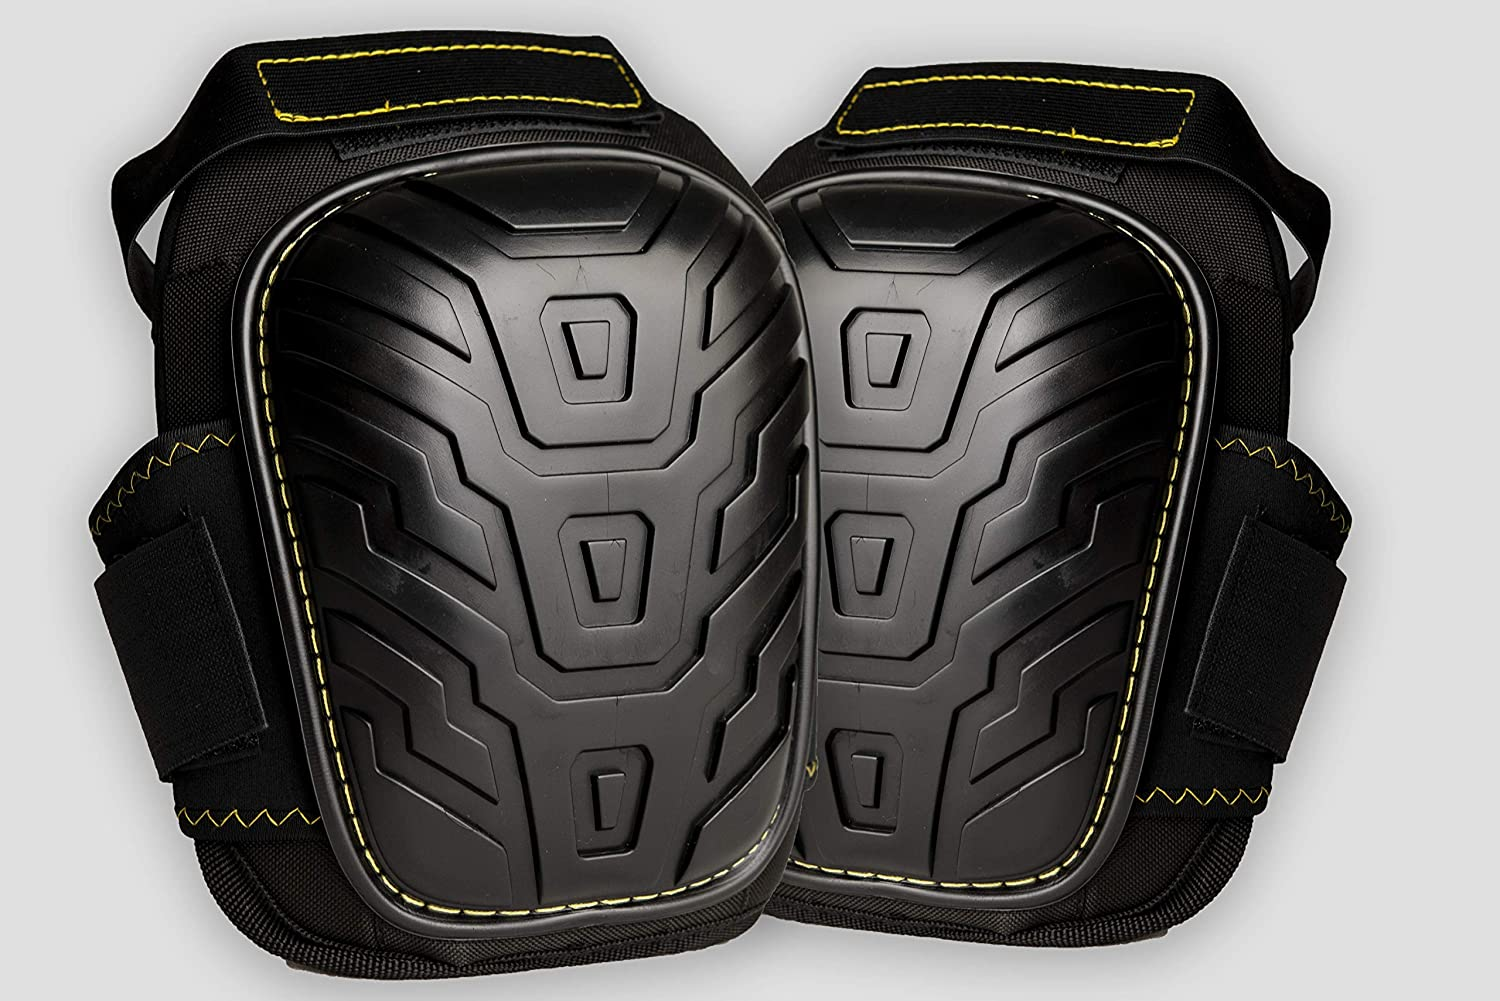 Professional Knee Pads with Heavy Duty Padding and Foam Comforta Overseas parallel import regular New popularity item